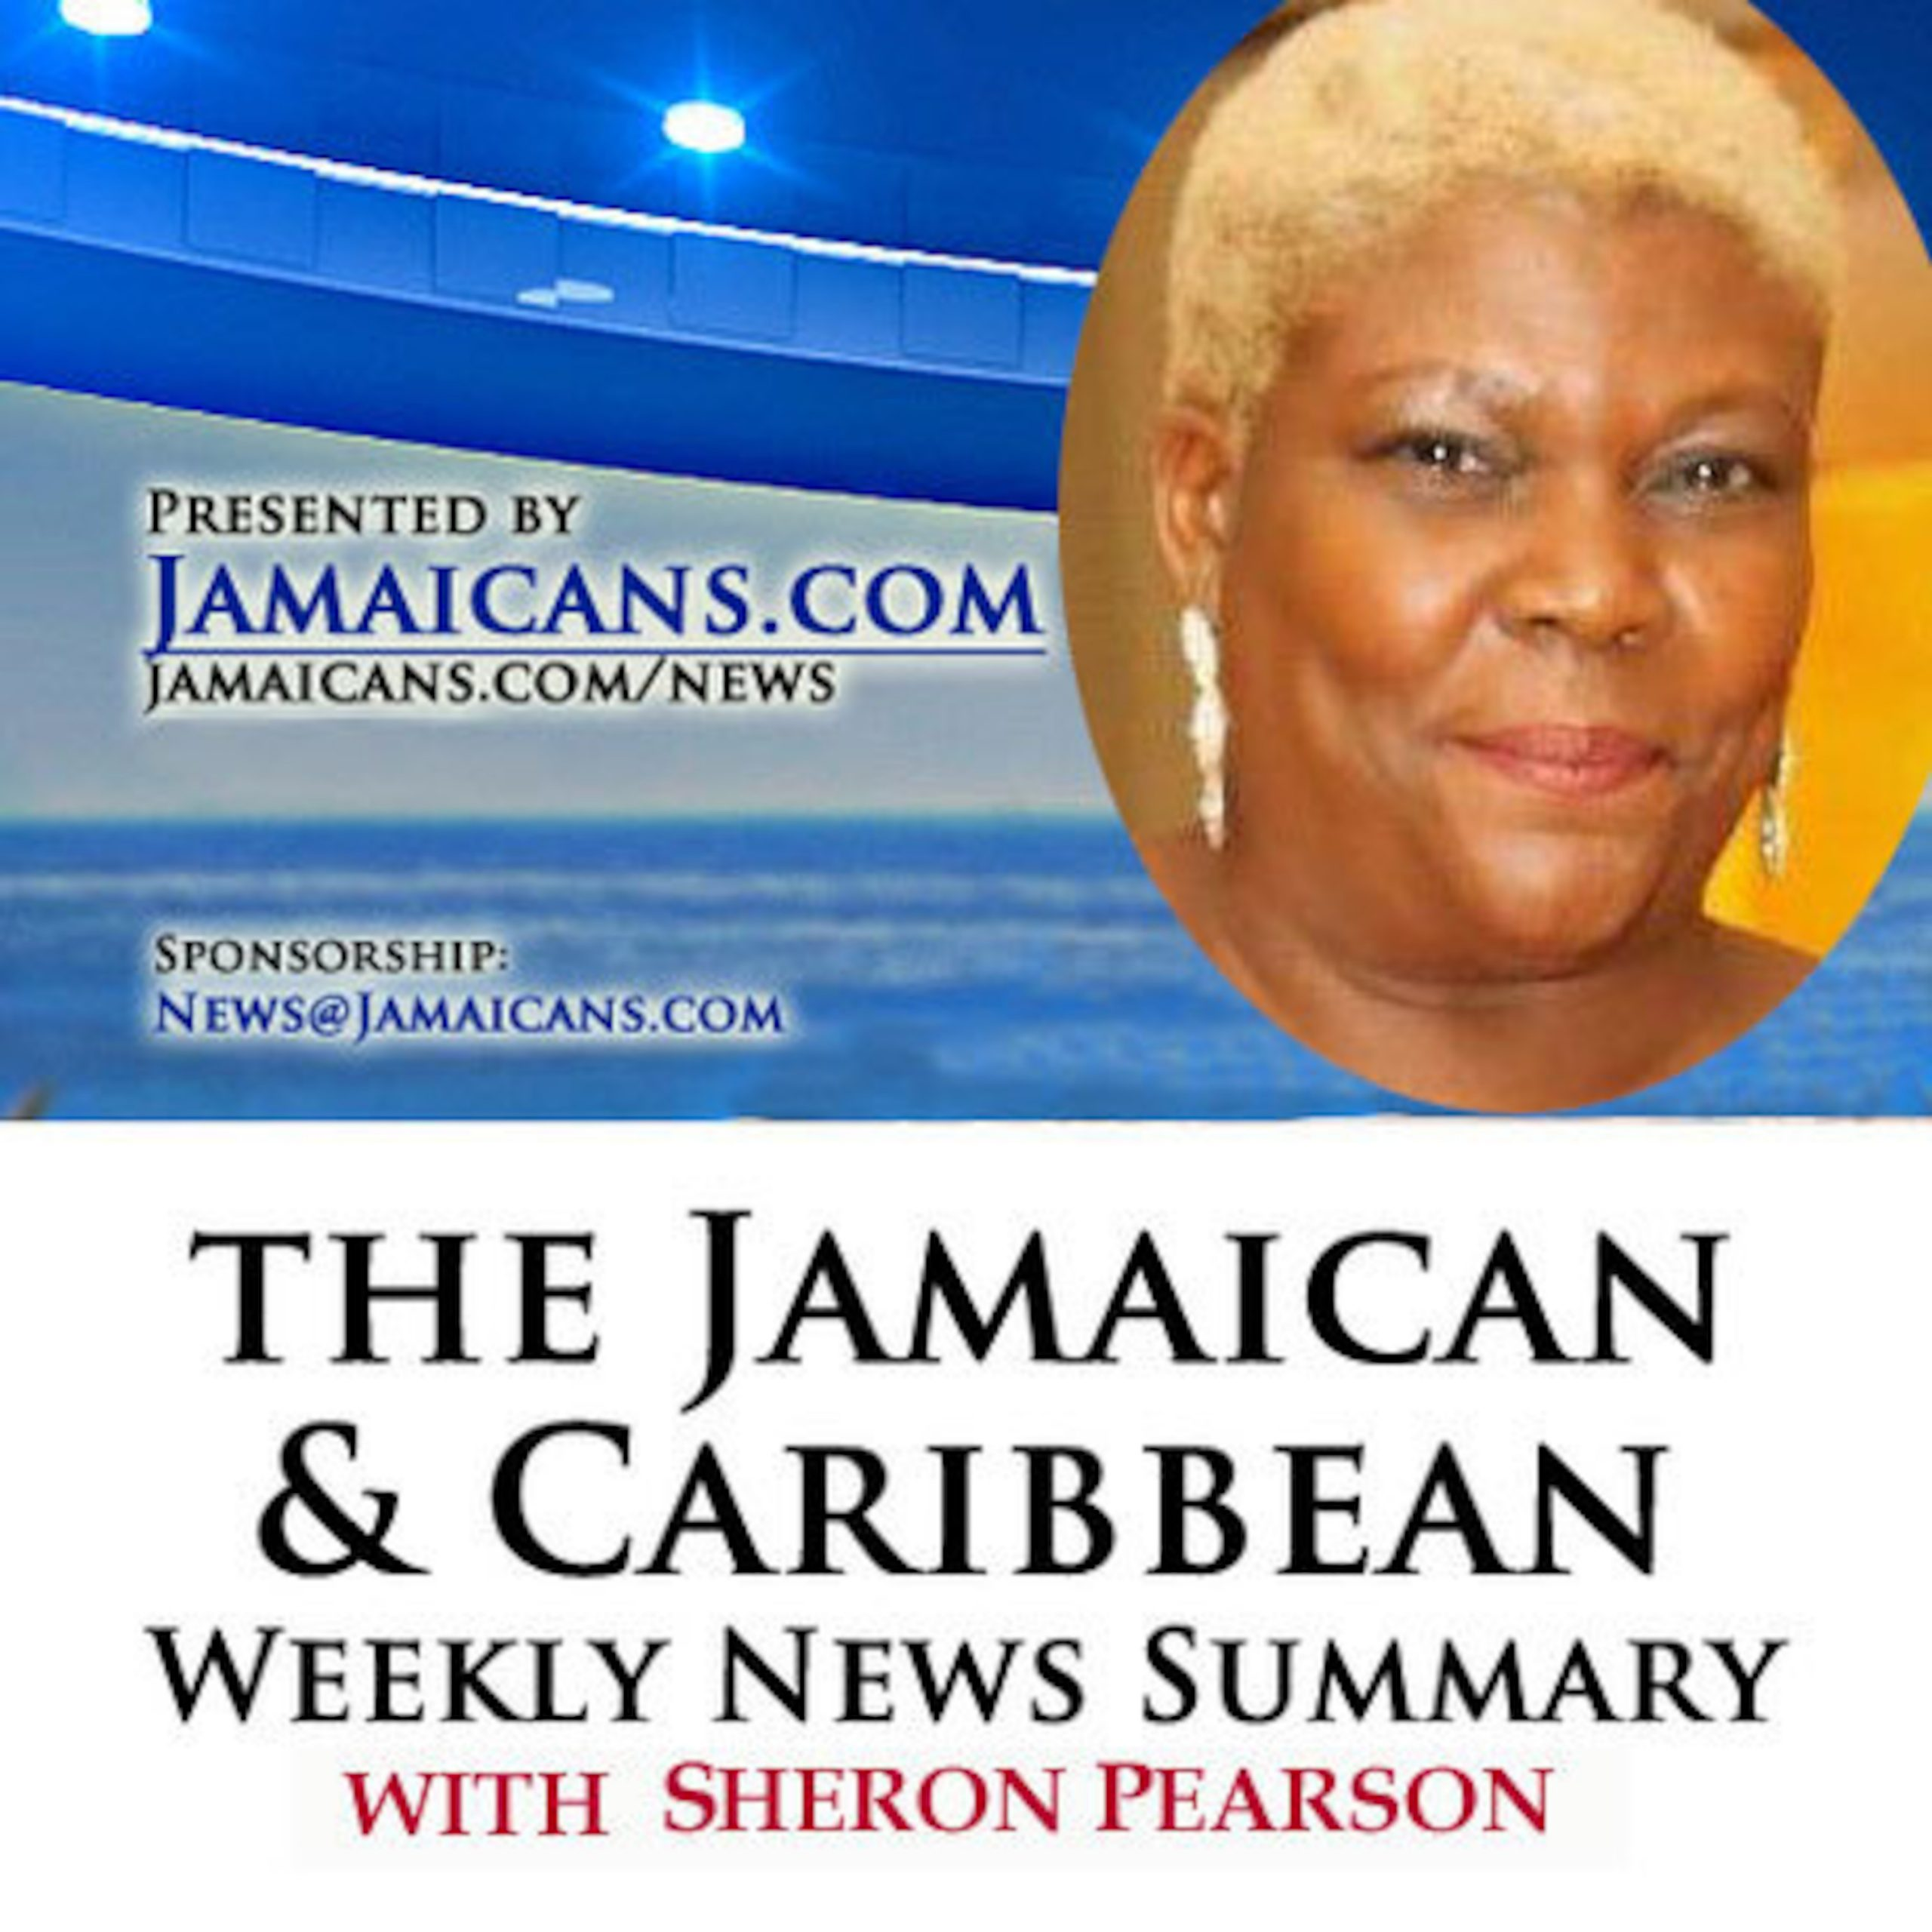 Listen to the Podcast of The Jamaica & Caribbean Weekly News Summary for the week ending March 13, 2020